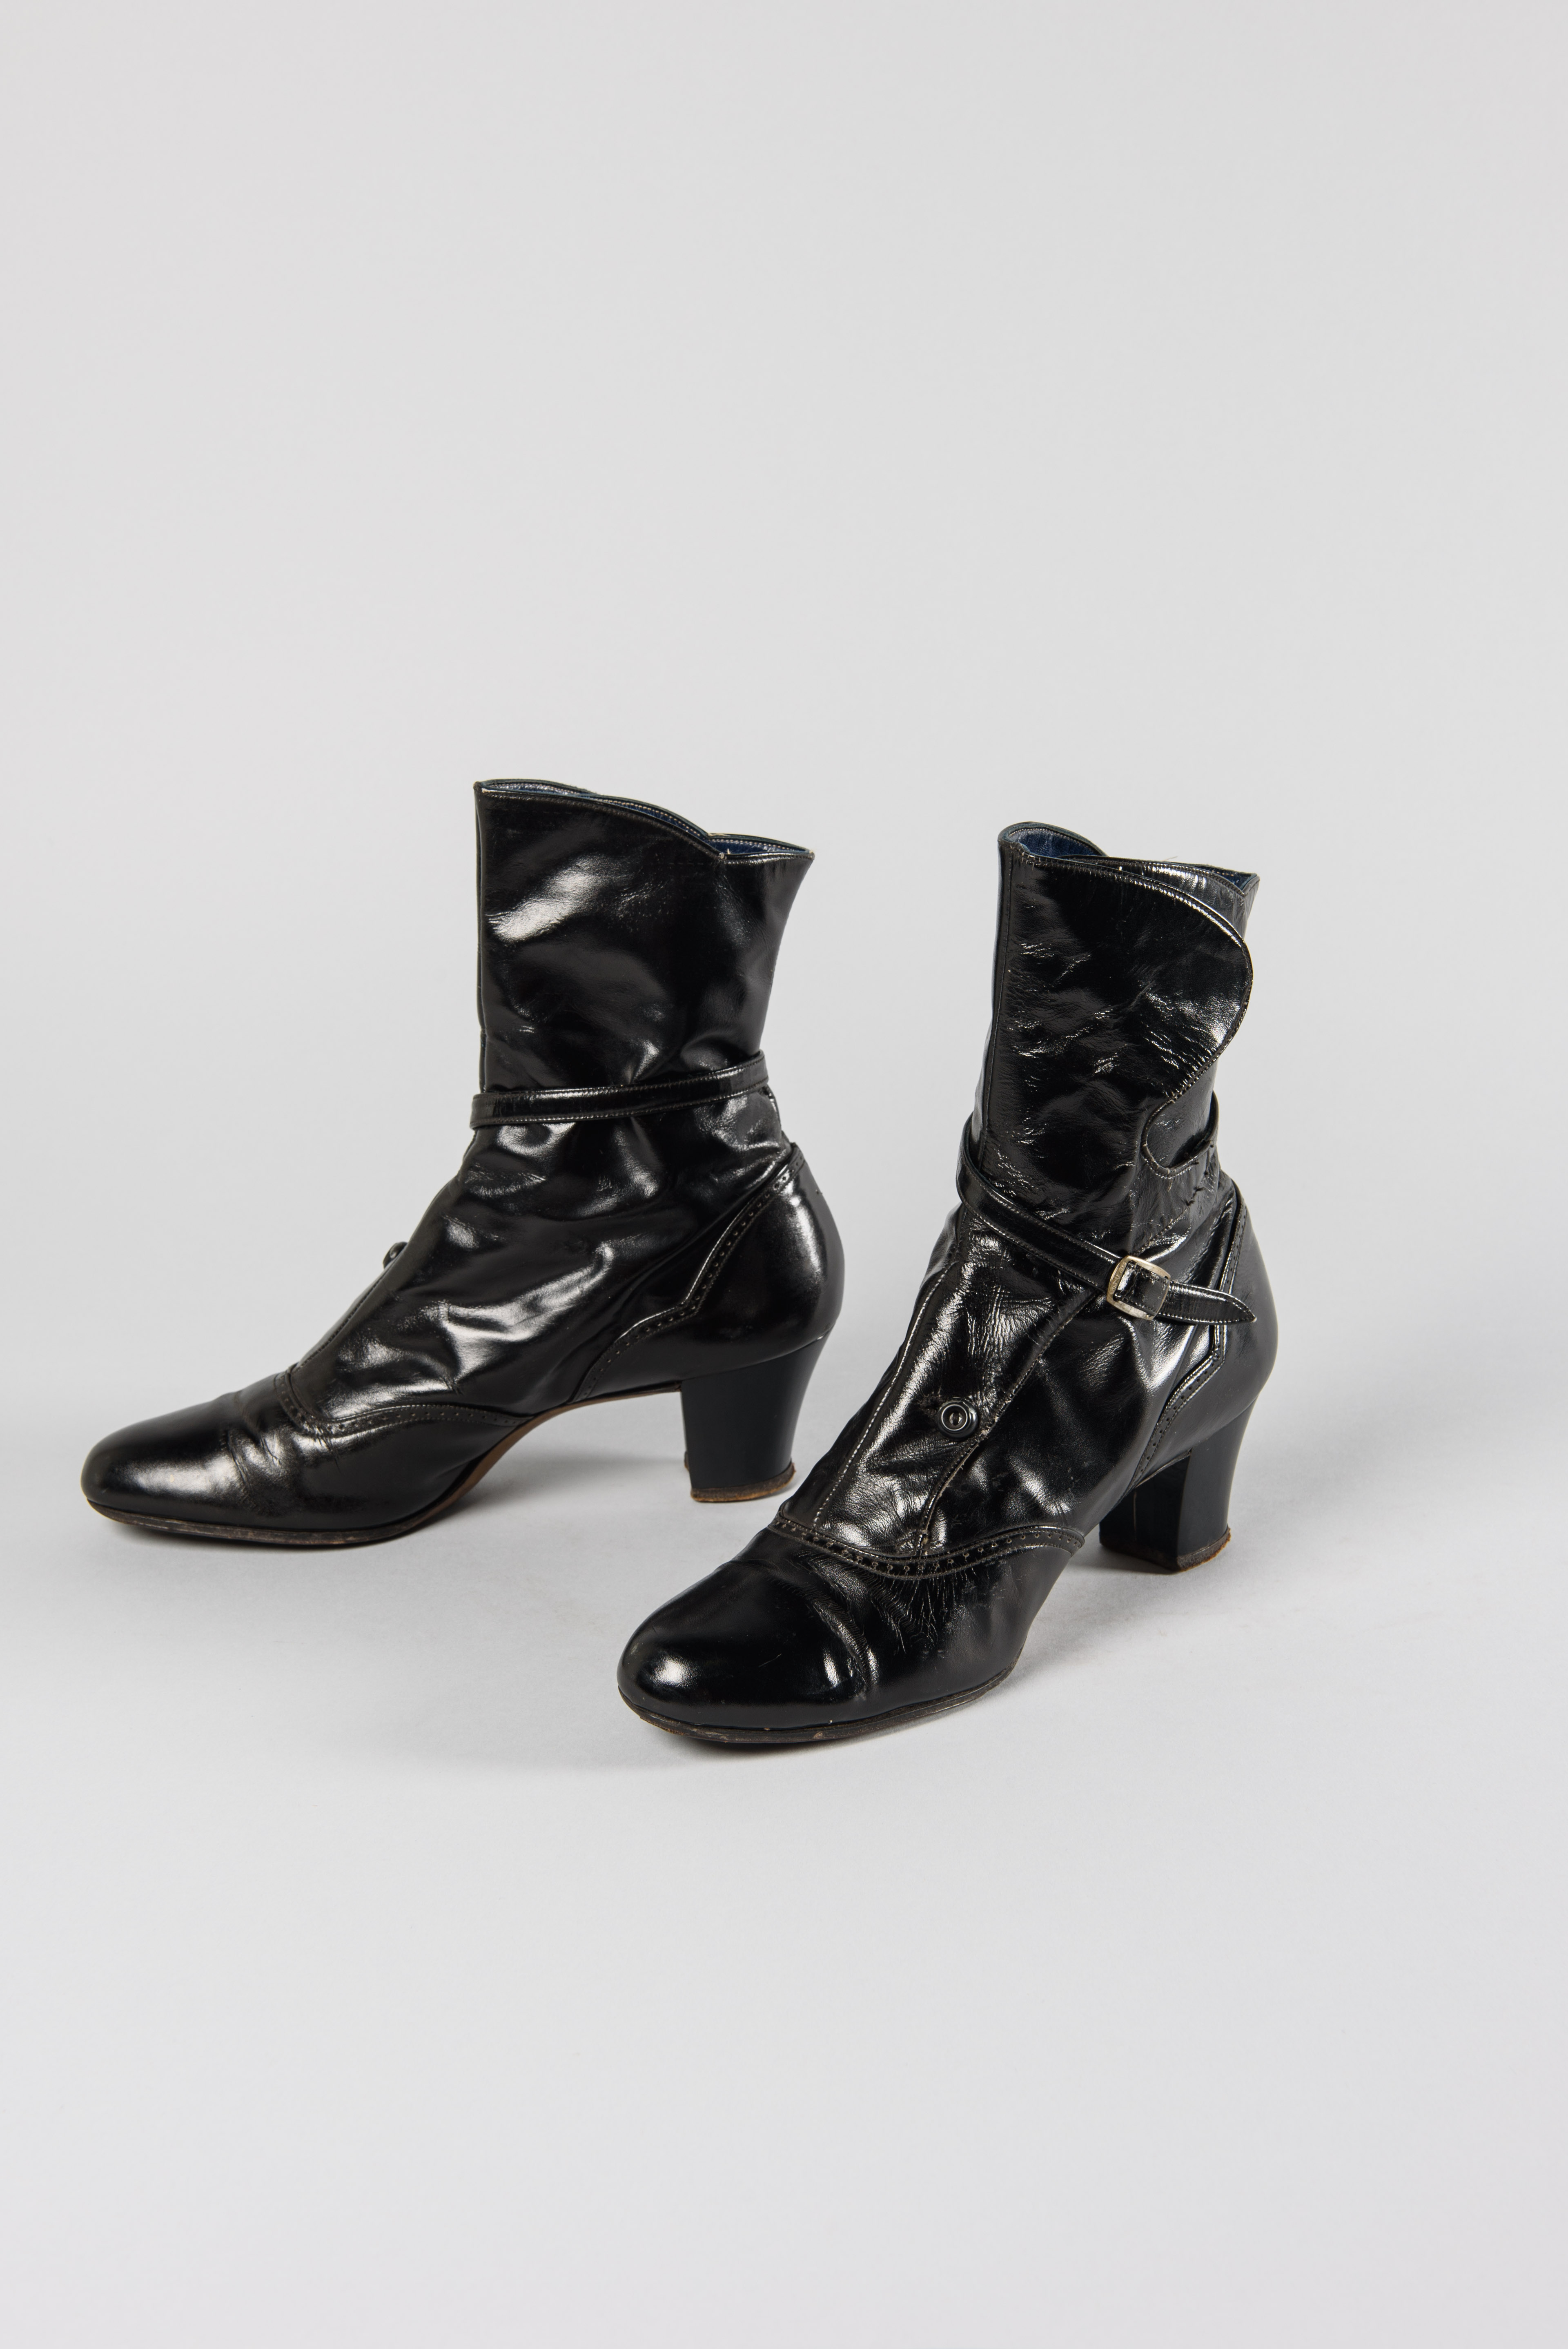 Heeled Boots, 1971, Wallin & Nordstrom, retailer. Gift of Mrs. Leona M. Bourke, copyright MOHAI Collection.{ }